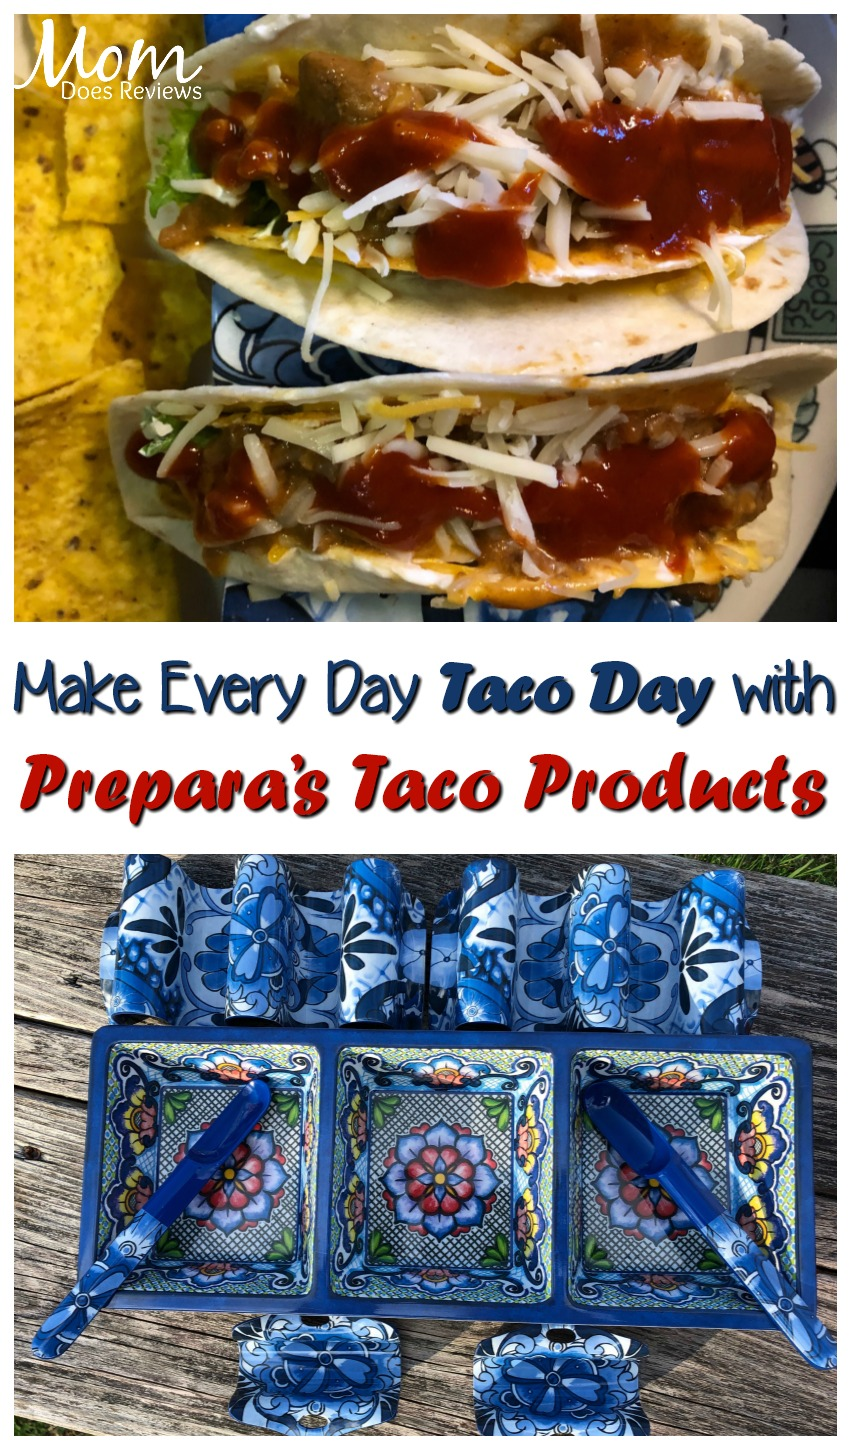 Every Day is Taco Day with Prepara's Taco Accessories #GiftsforMom19 #tacos #tacotuesday #food #foodie